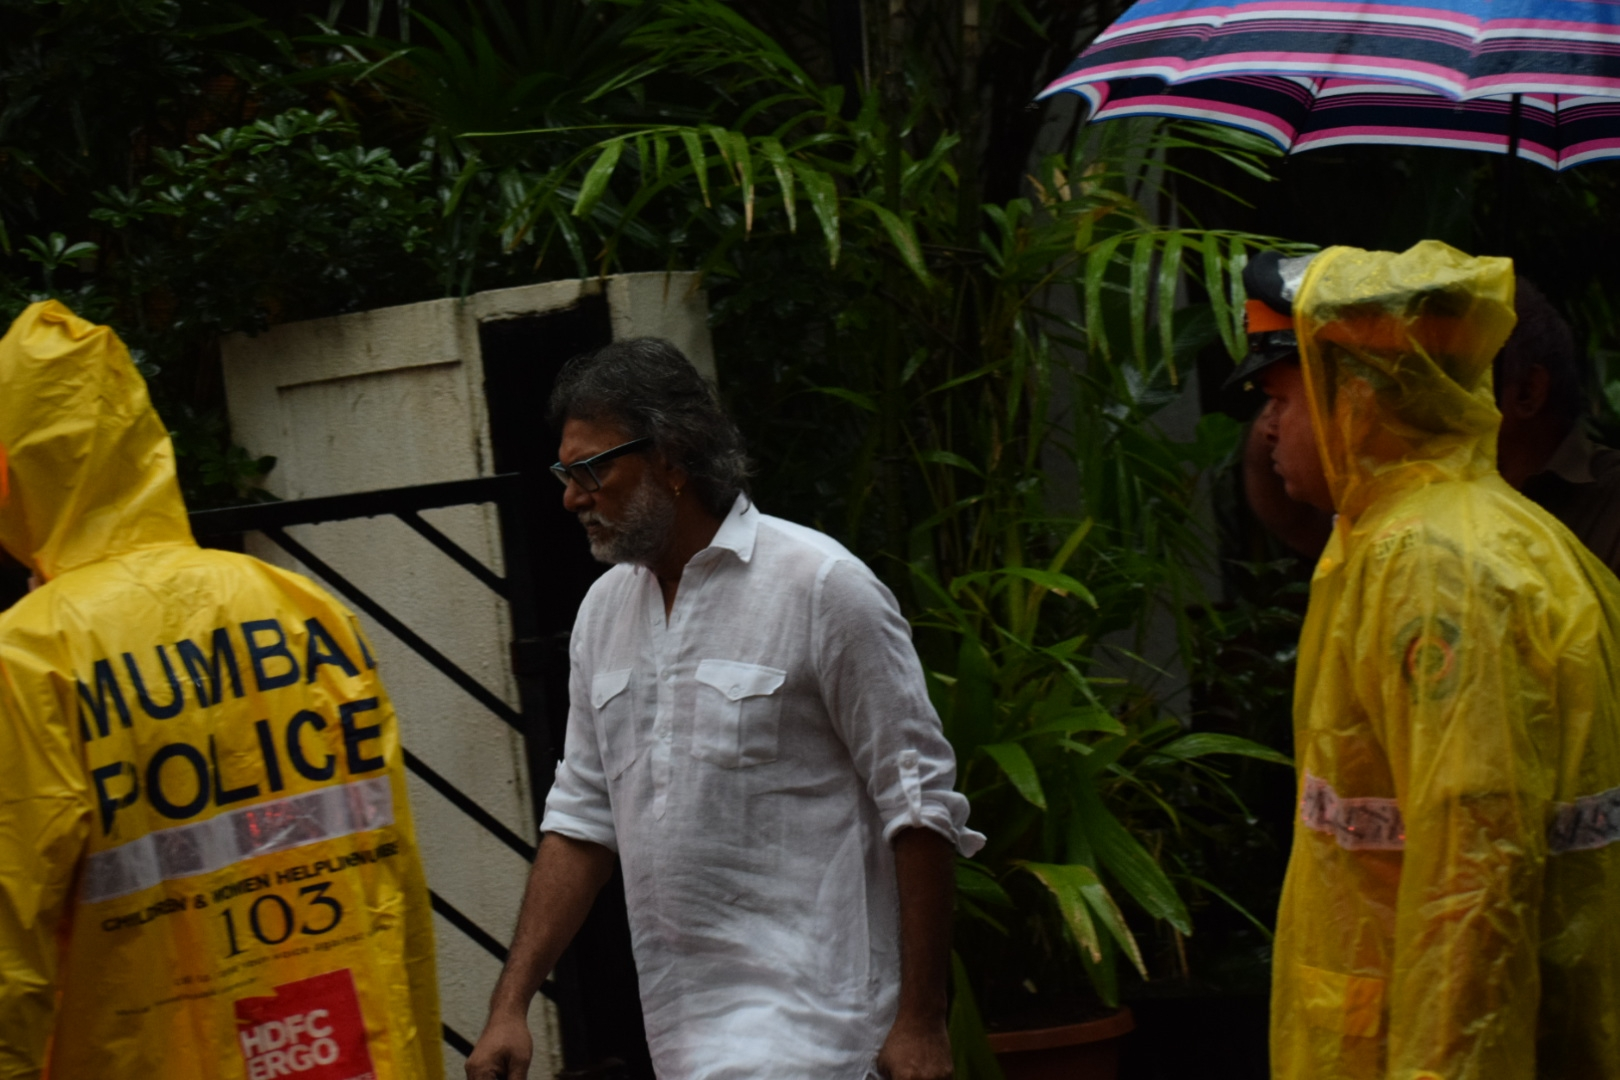 Filmmaker Rakeysh Omprakash Mehra at the state funeral. (Image credit: IANS)